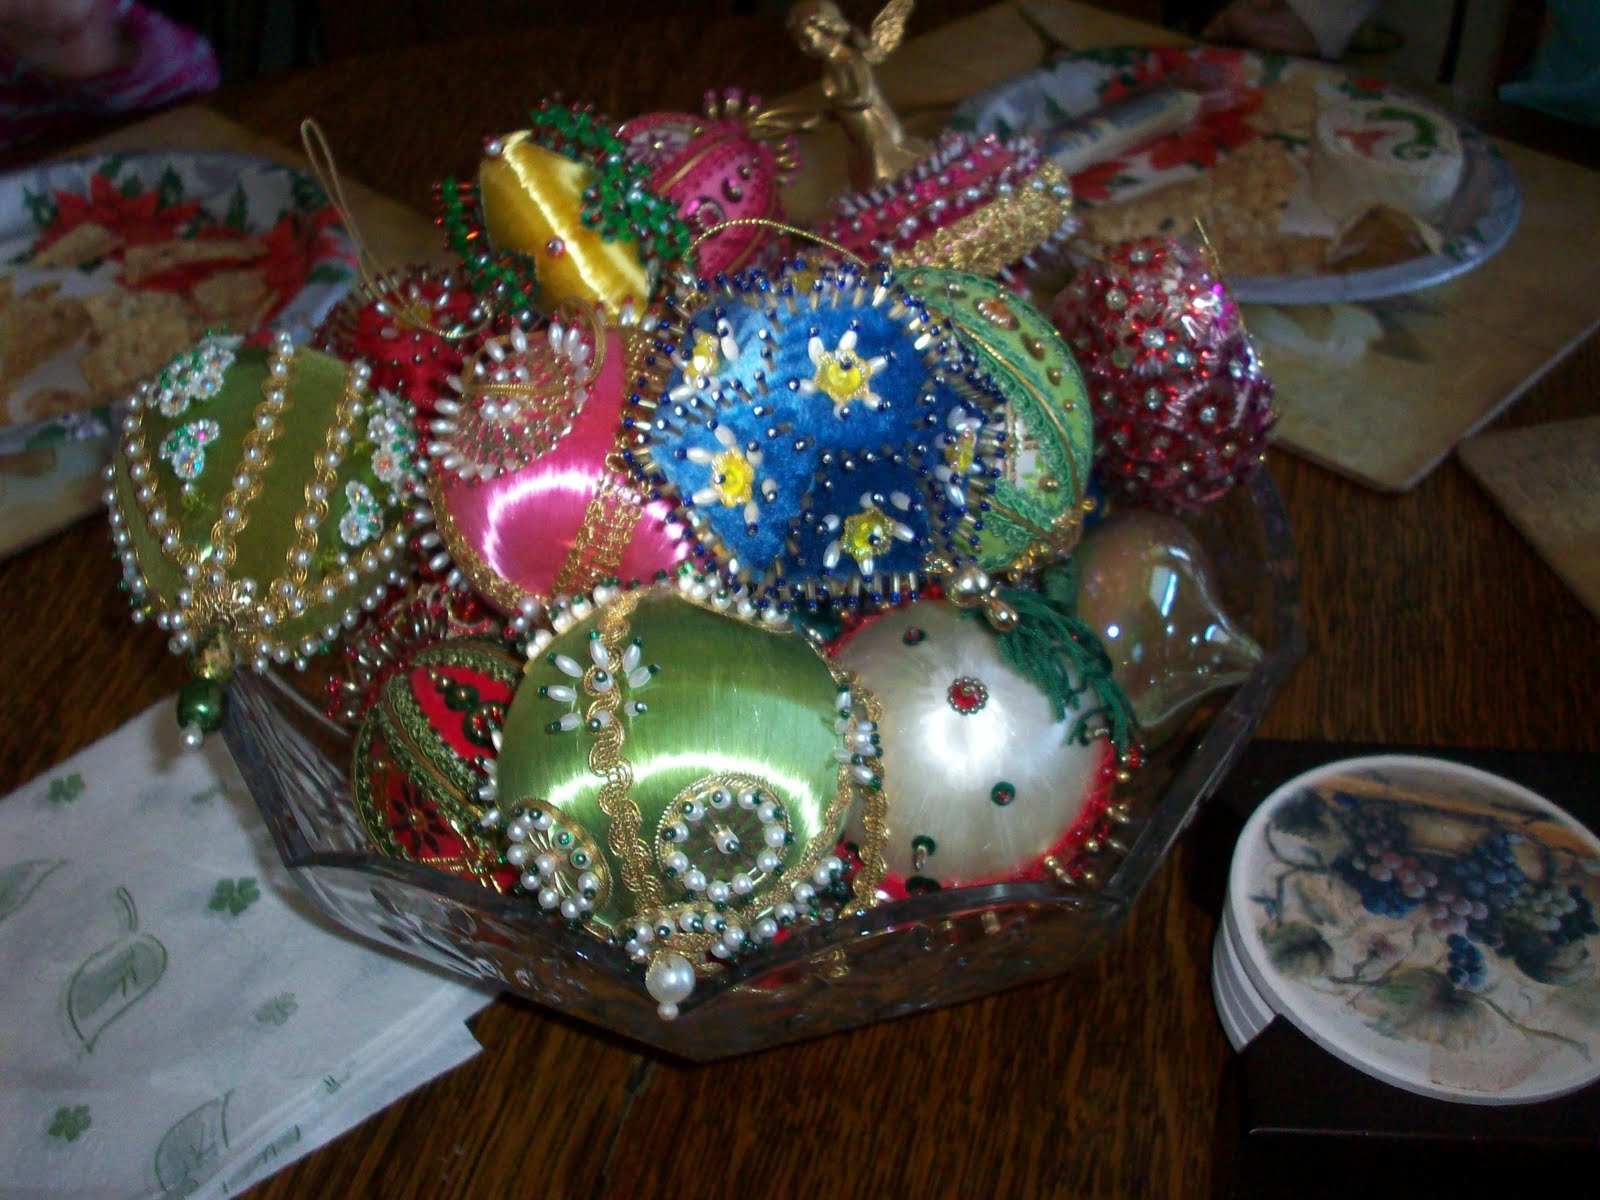 And Here's Another Bowl Of Handmade Ornaments Joy Is Very Talented!